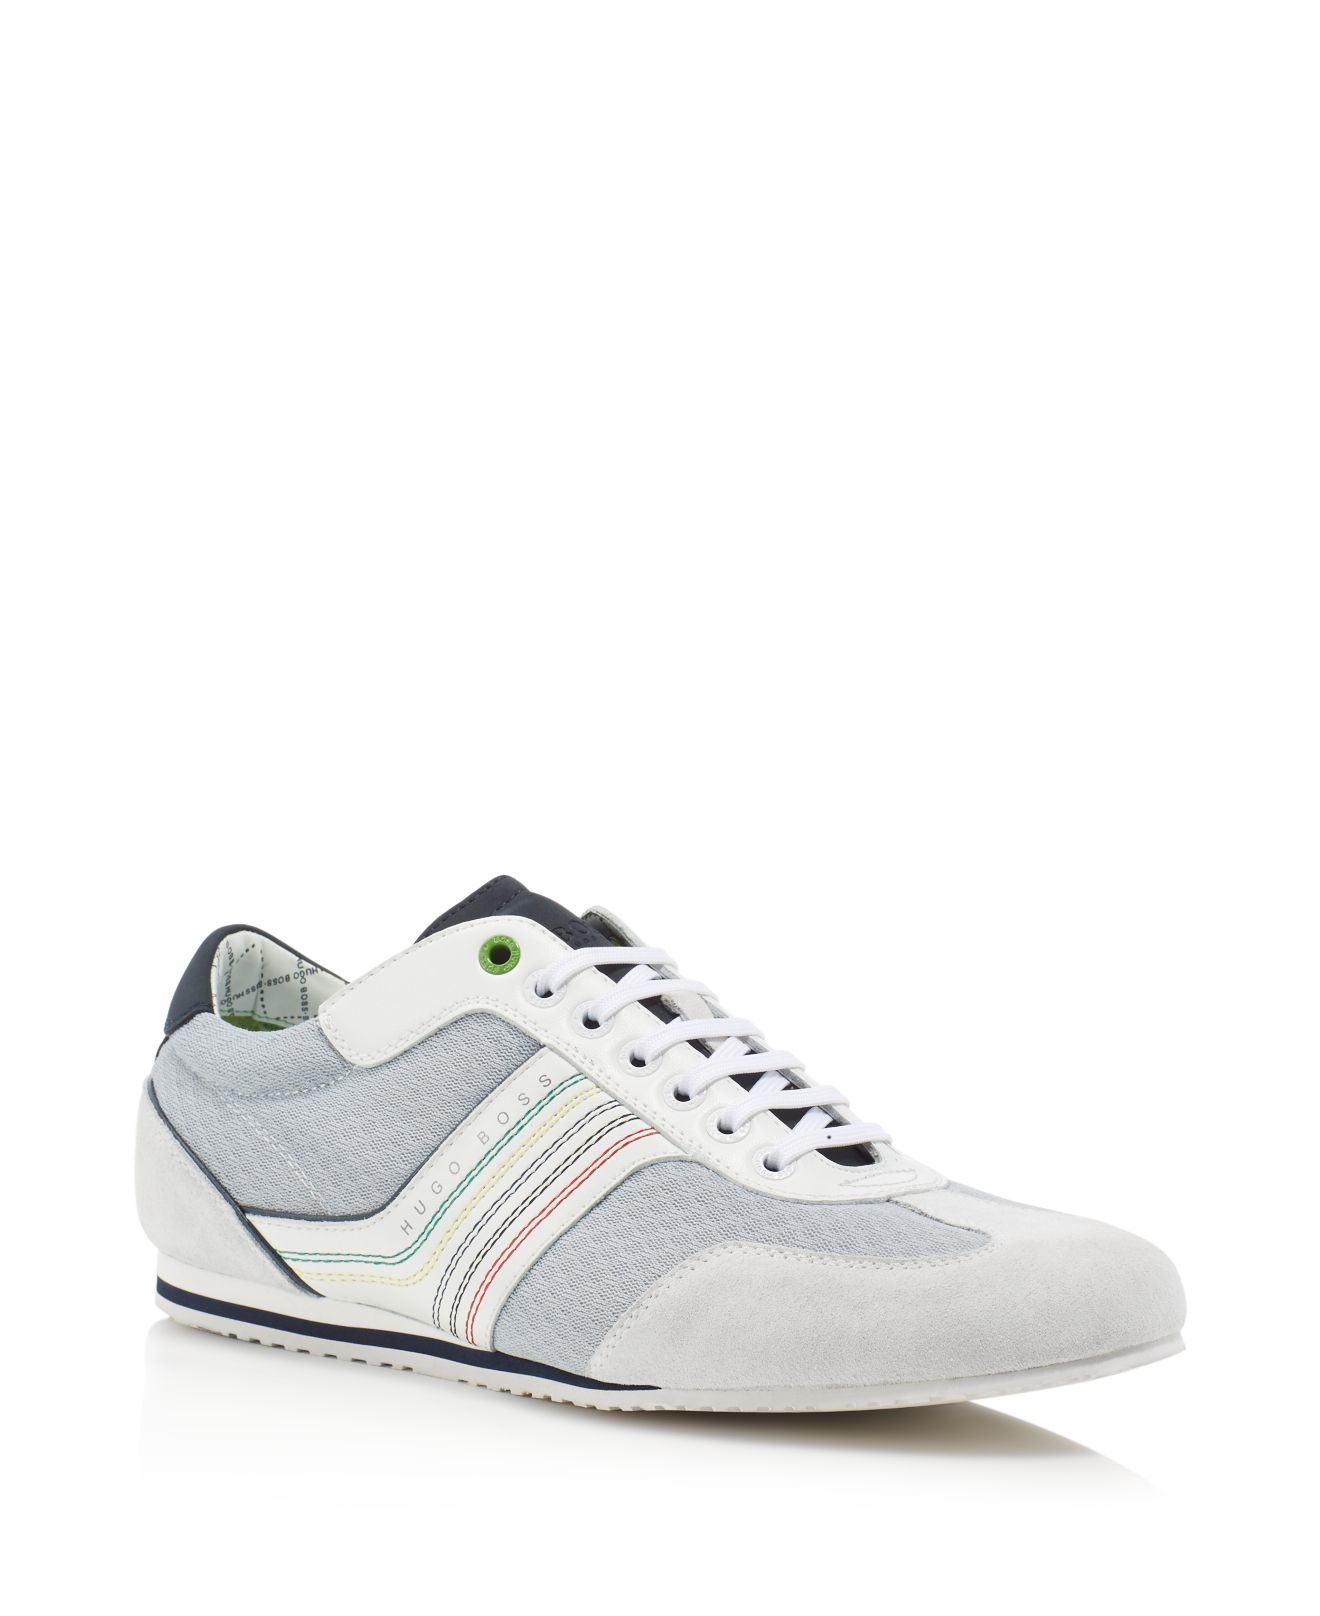 boss green hugo boss victov lace up sneakers in white for men lyst. Black Bedroom Furniture Sets. Home Design Ideas